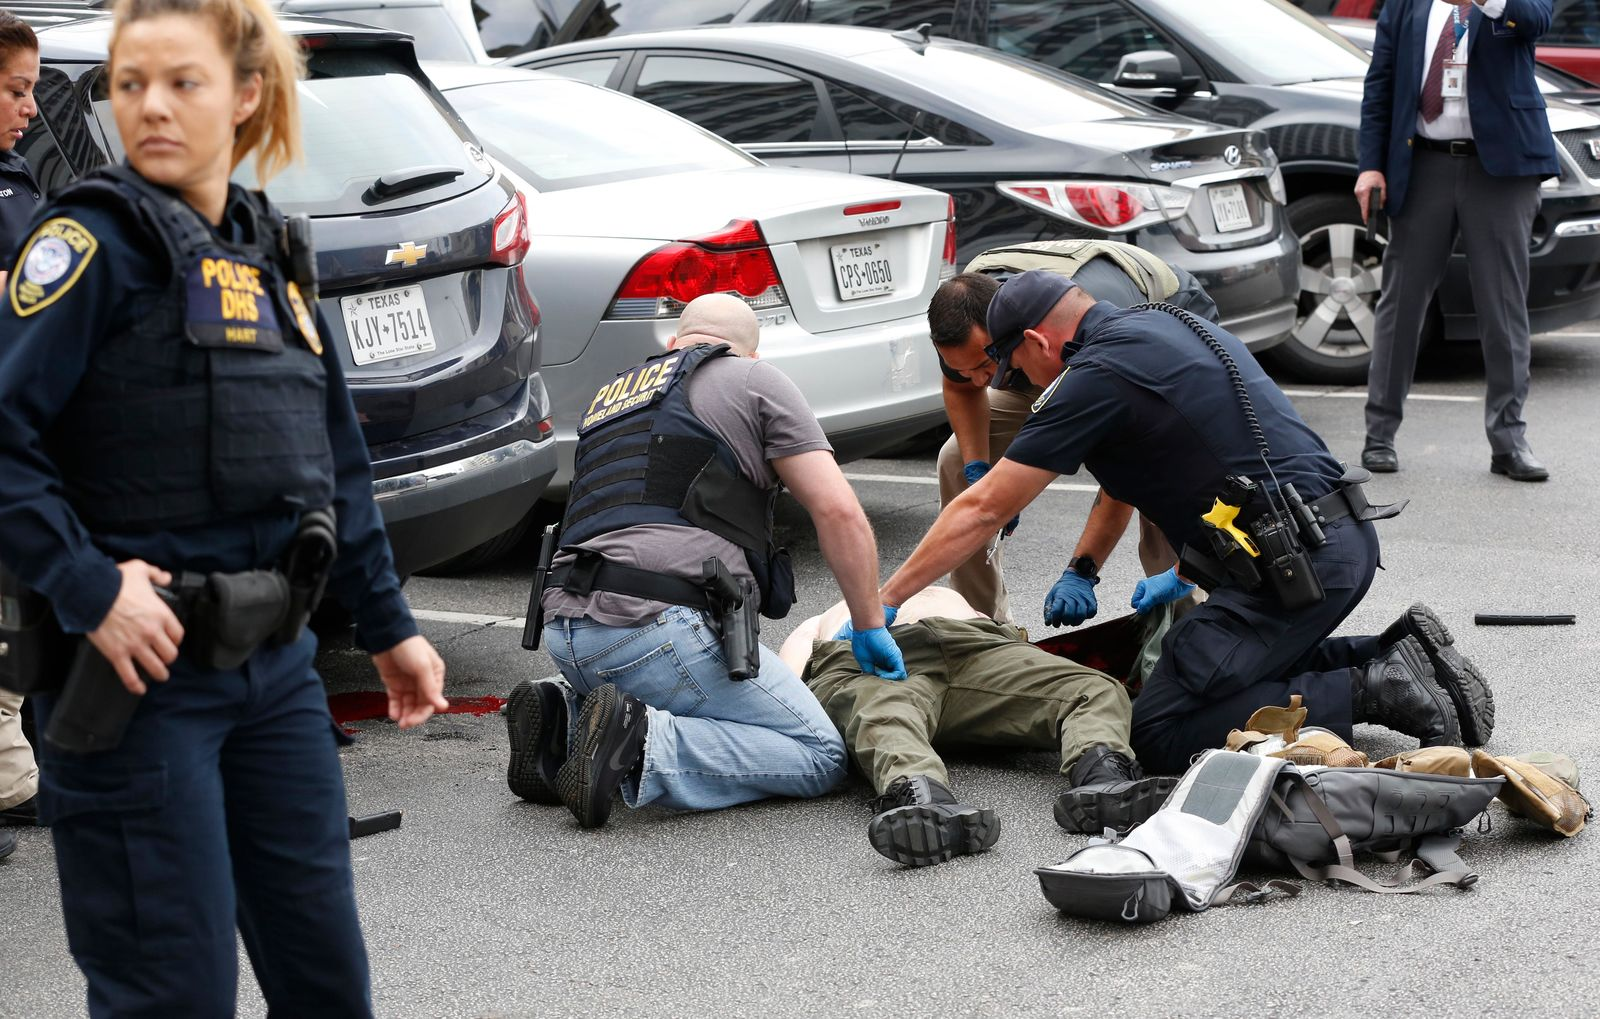 Law enforcement officers attend to an injured shooter in a parking lot after he fired shots at the Earle Cabell Federal Building in downtown Dallas, Monday, June 17, 2019. (Tom Fox/The Dallas Morning News) MANDATORY CREDIT, NO SALES, MAGS OUT,  TV OUT, INTERNET USE BY AP MEMBERS ONLY